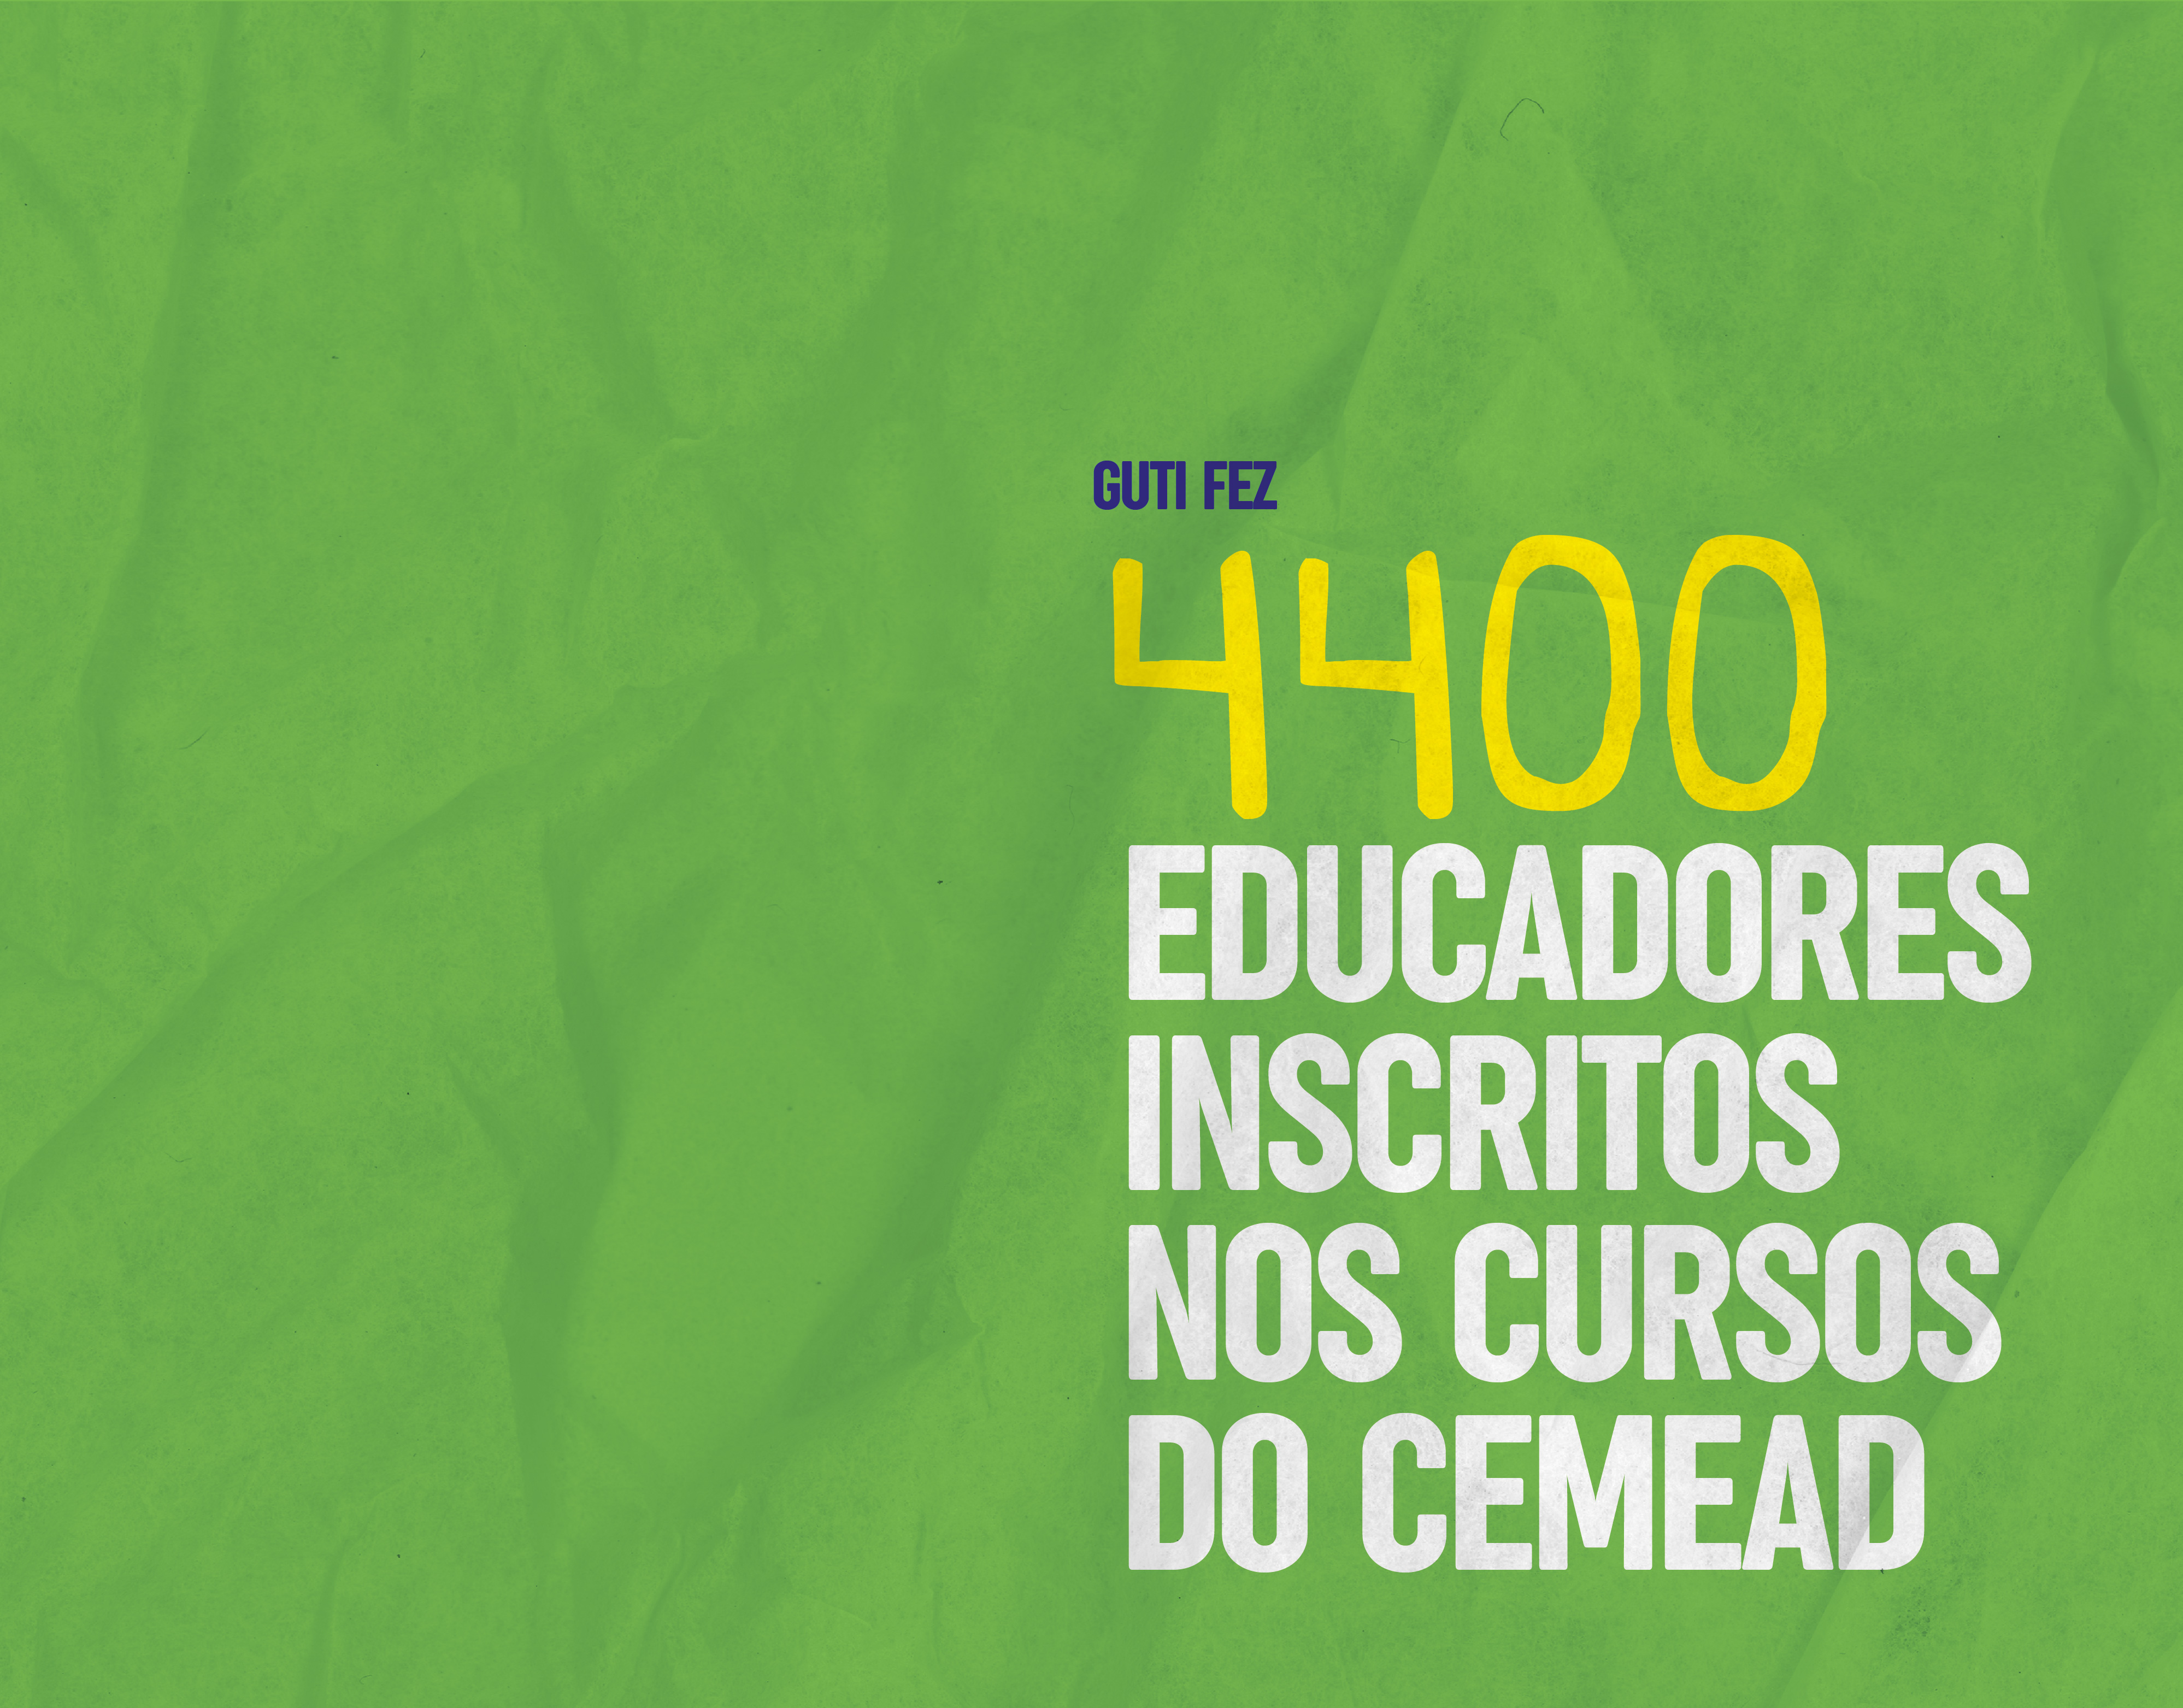 4400 educadores inscritos nos cursos do CEMEAD